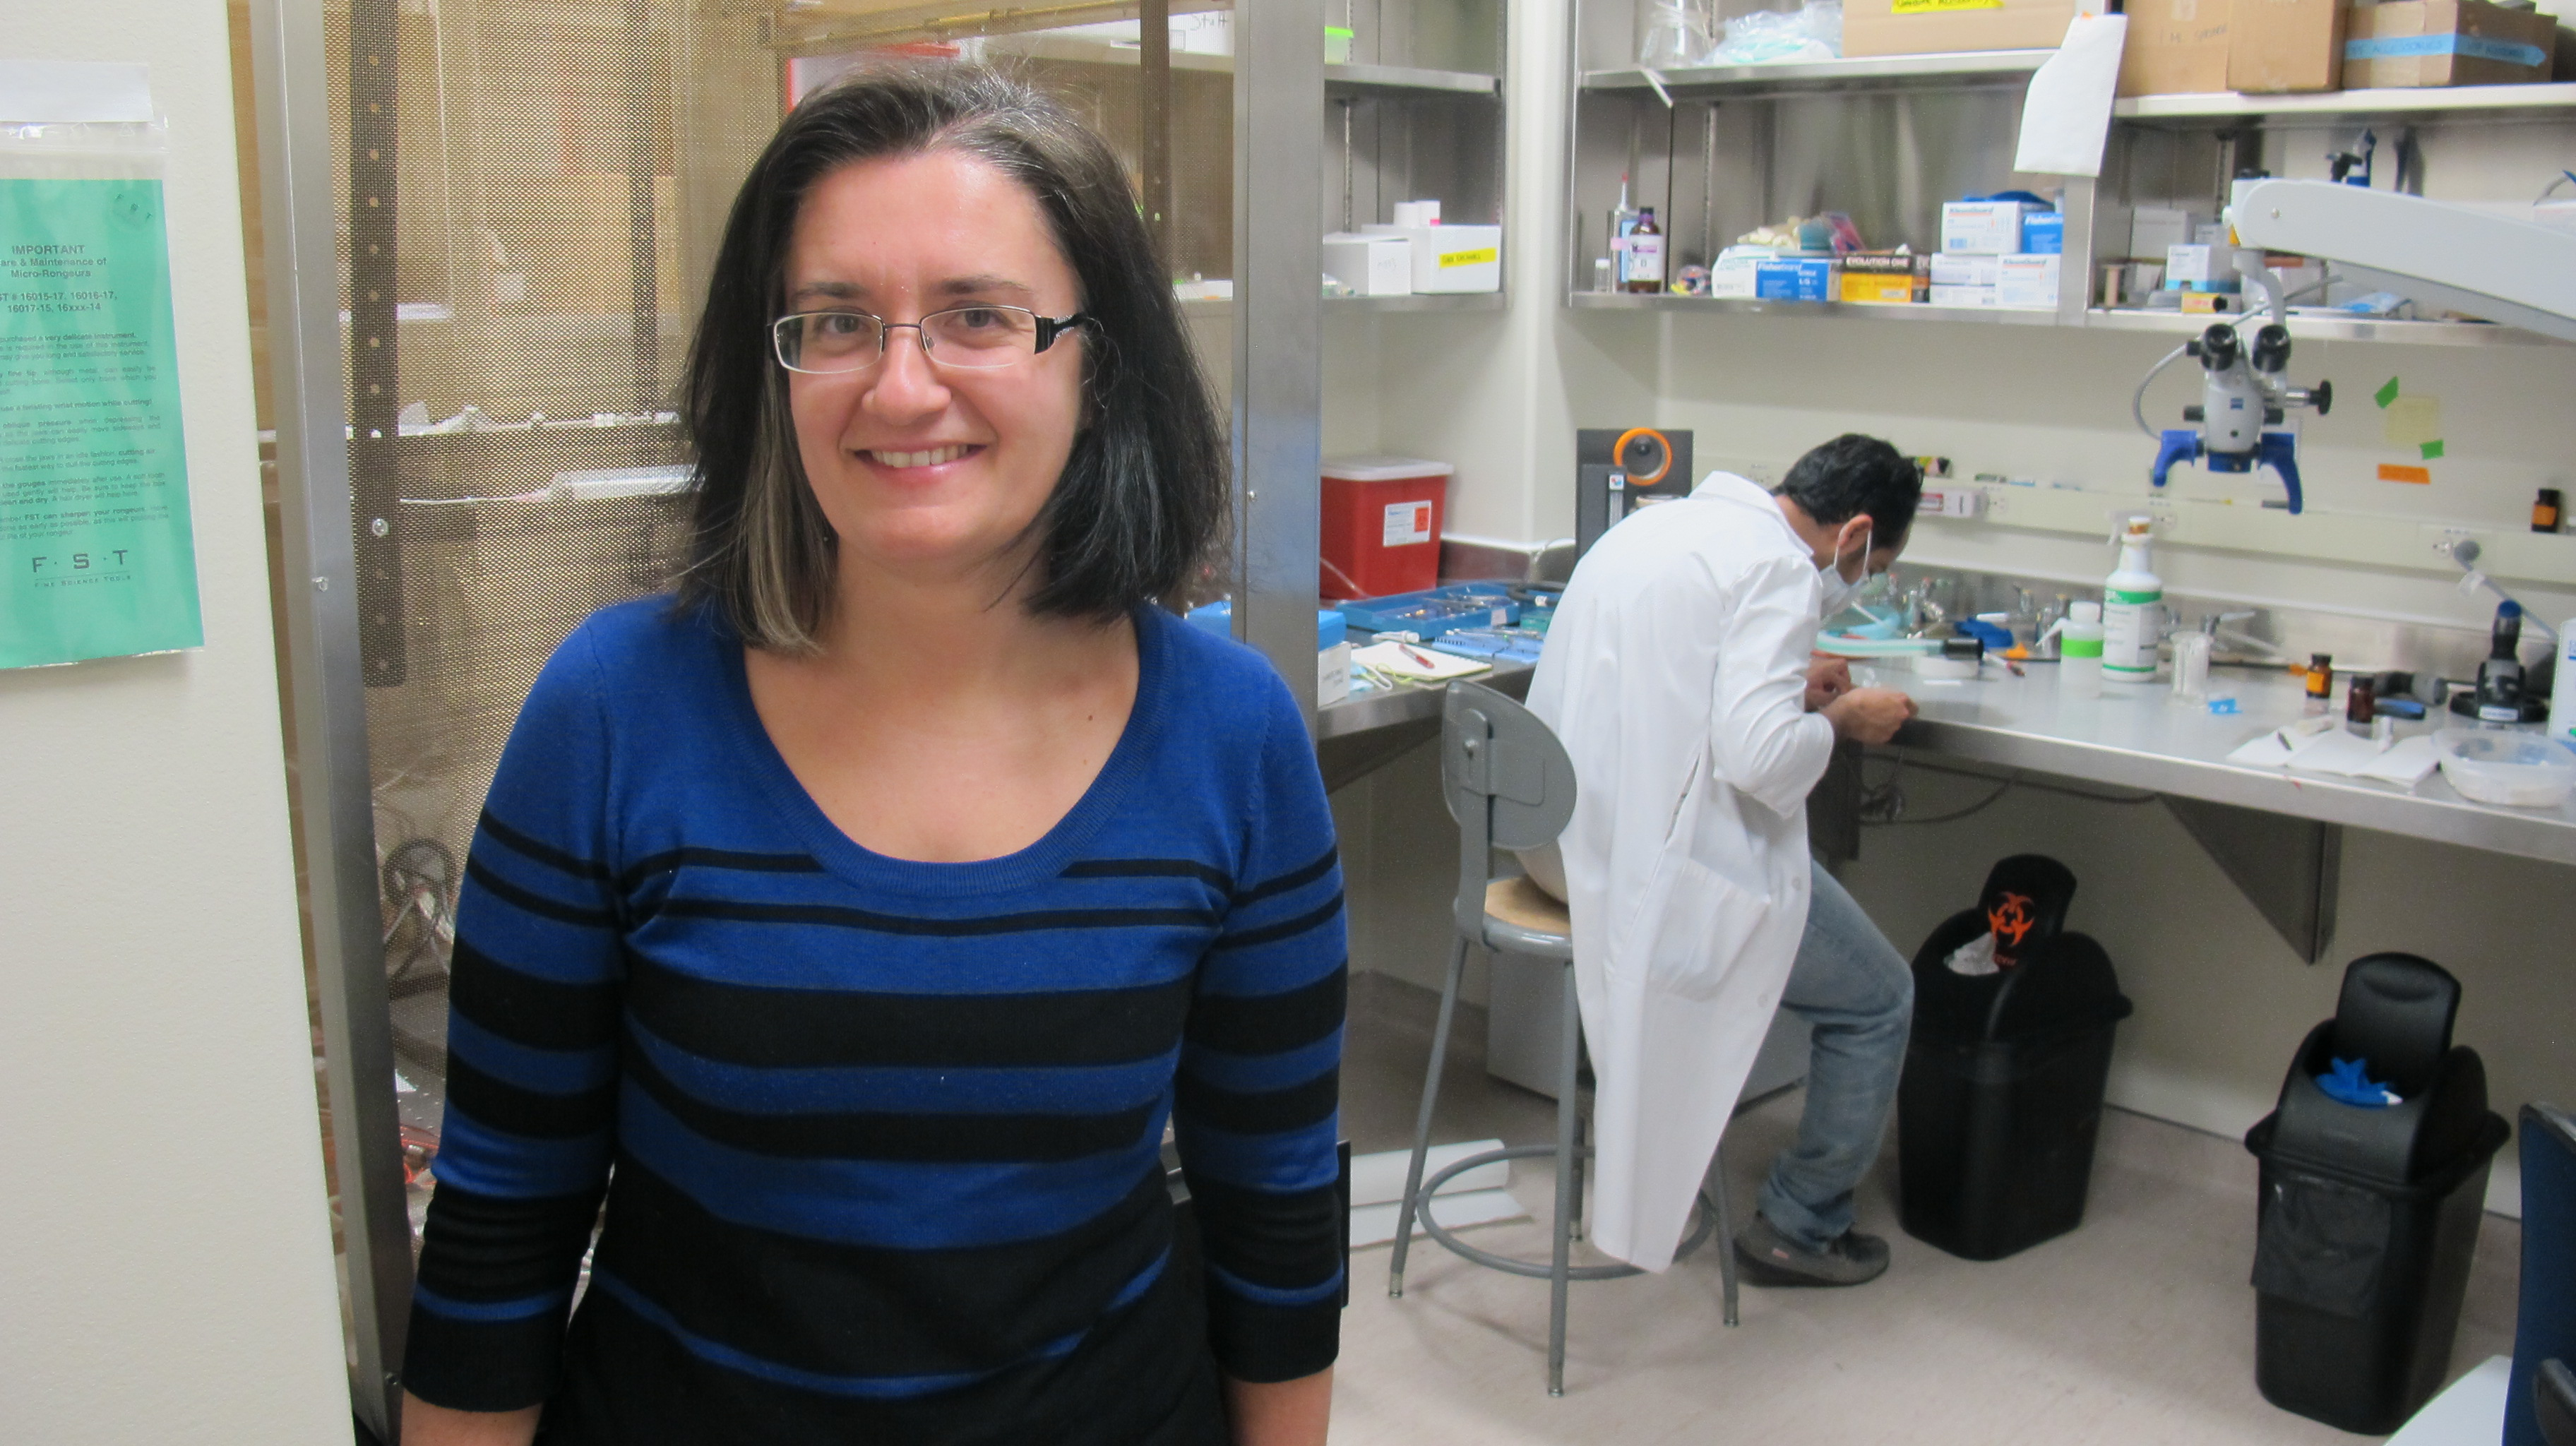 Silvia Pagliardini co-authored a paper in the journal Nature examining the science of sighing